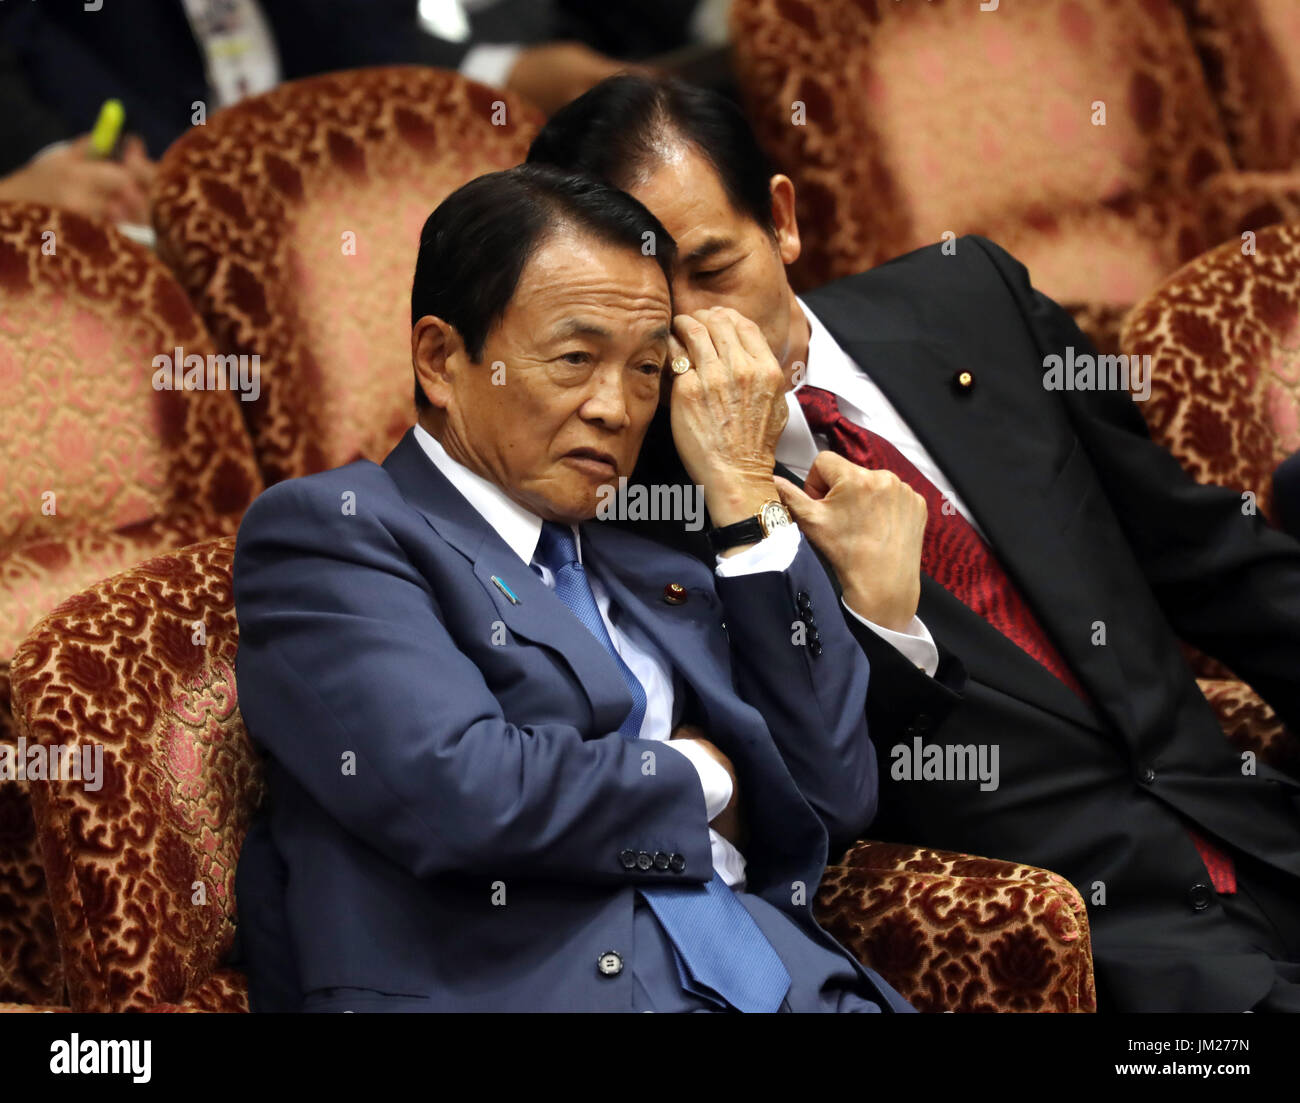 Tokyo, Japan. 25th July, 2017. Japanese Finance Minister Taro Aso (L) chats with Regional Revitalization Minister Kozo Yamamoto at Upper House's budget committee session at the National Diet in Tokyo on Tuesday, July 25, 2017. Abe said he was not asked by his friend Kotaro Kake for help in opening a new university department in Imabari. Credit: Yoshio Tsunoda/AFLO/Alamy Live News - Stock Image